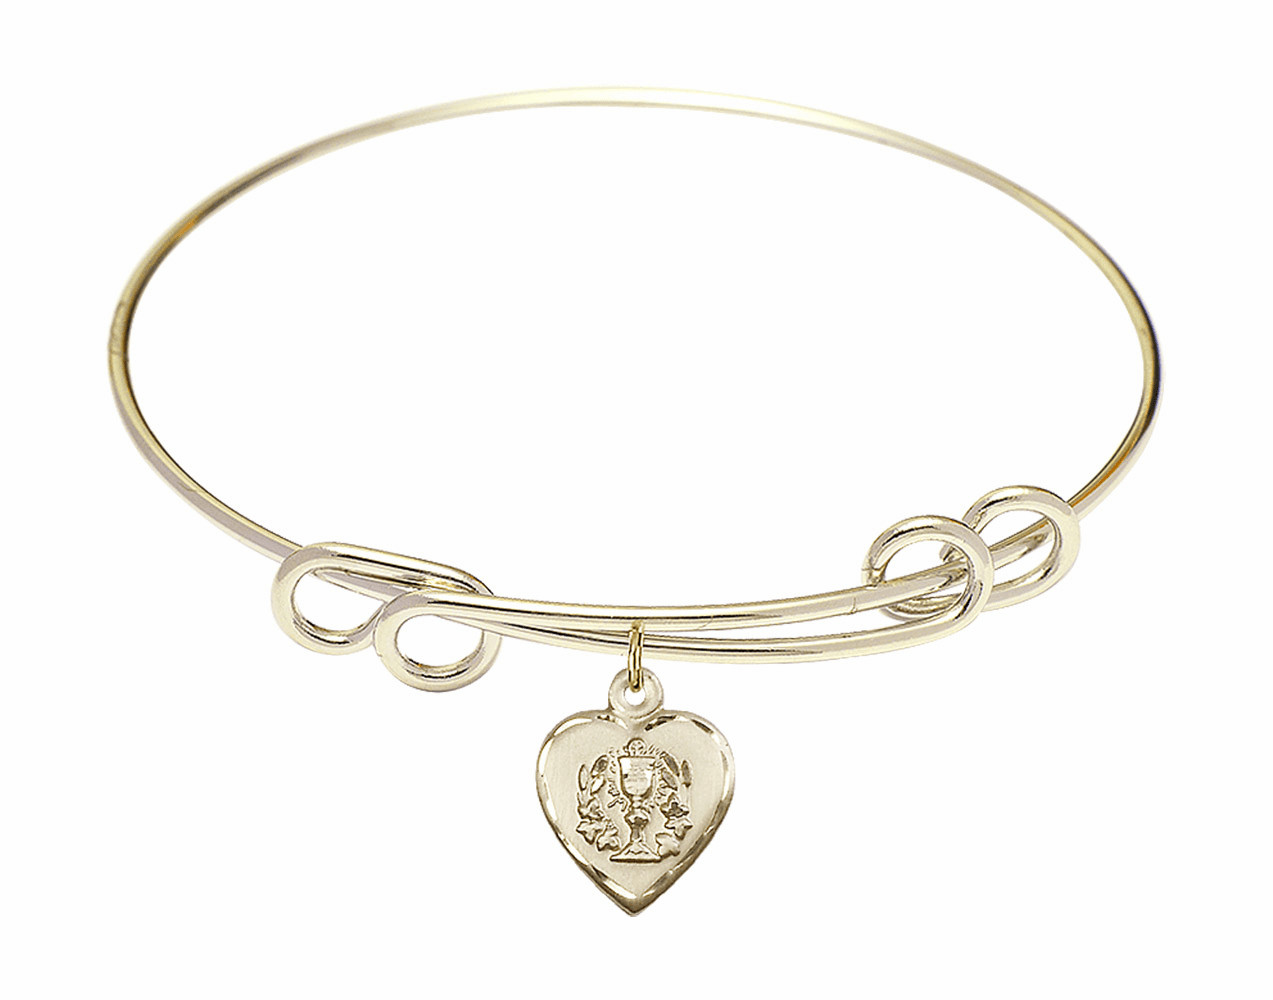 Round Double Loop Bangle Bracelet w/Confirmation Heart Charm by Bliss Mfg